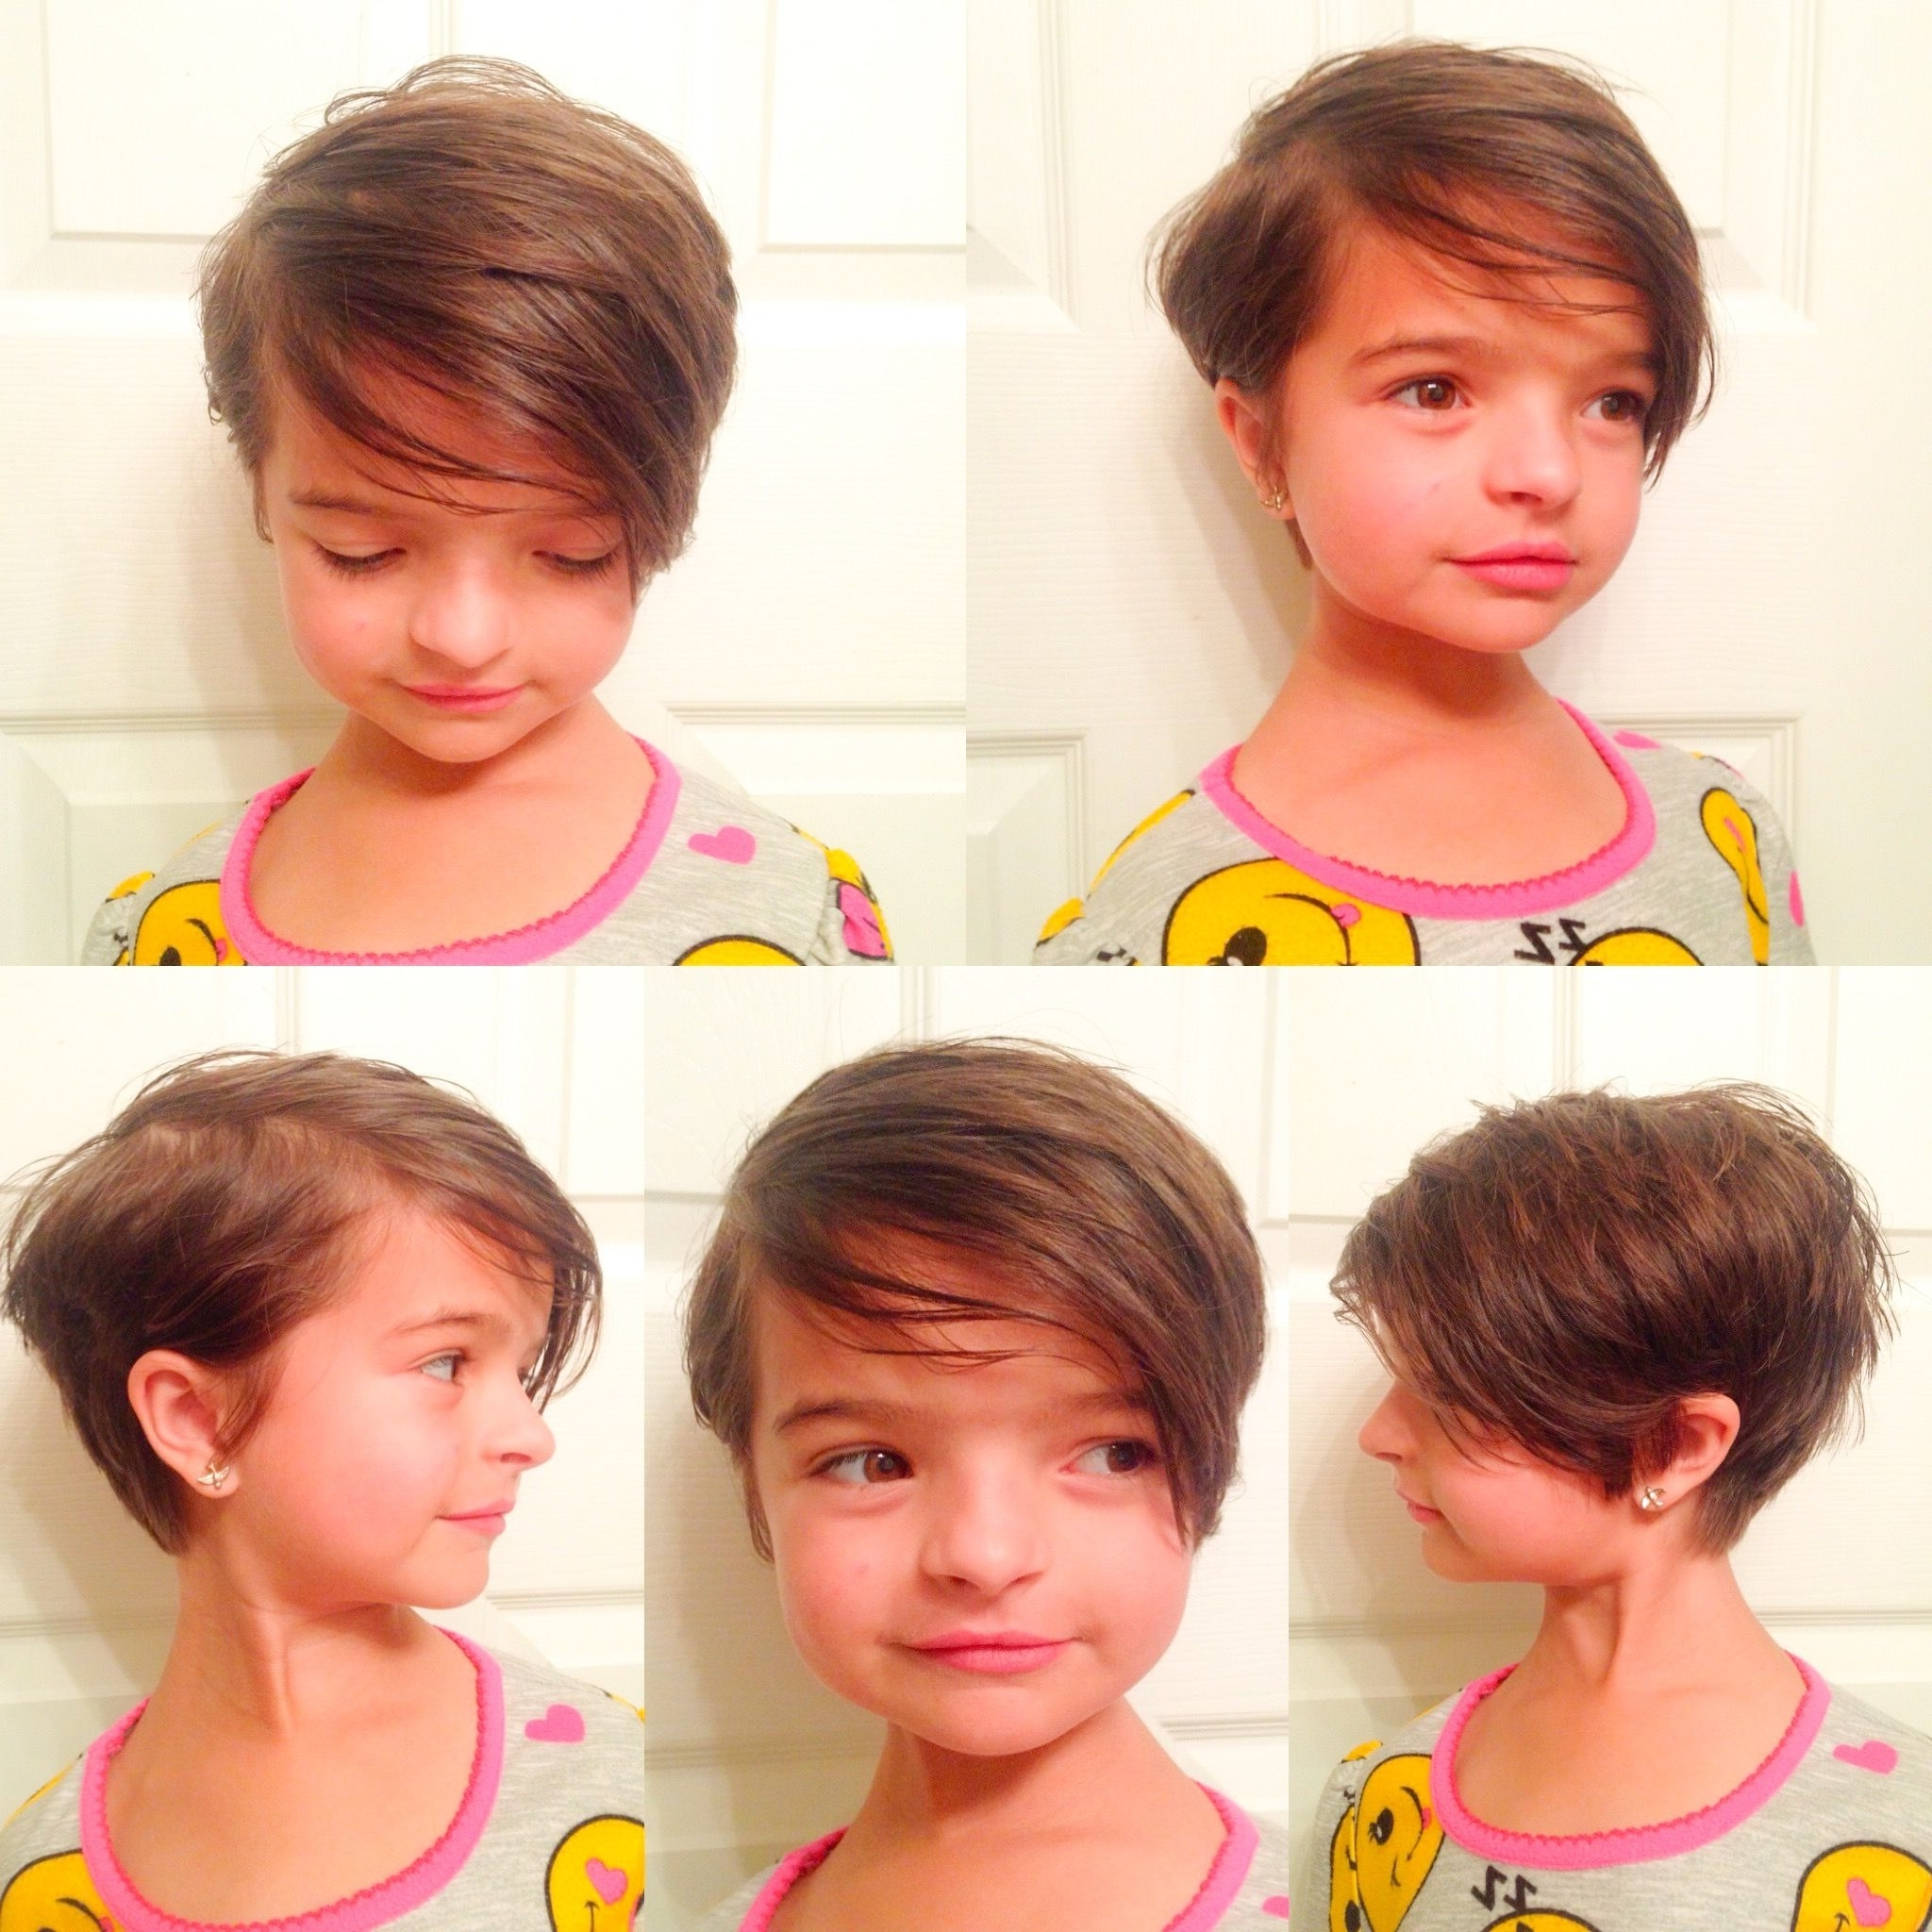 Little Girl's Haircut, Little Girl's Hairstyle, Pixie Cut, Short With Newest Kids Pixie Hairstyles (View 12 of 15)